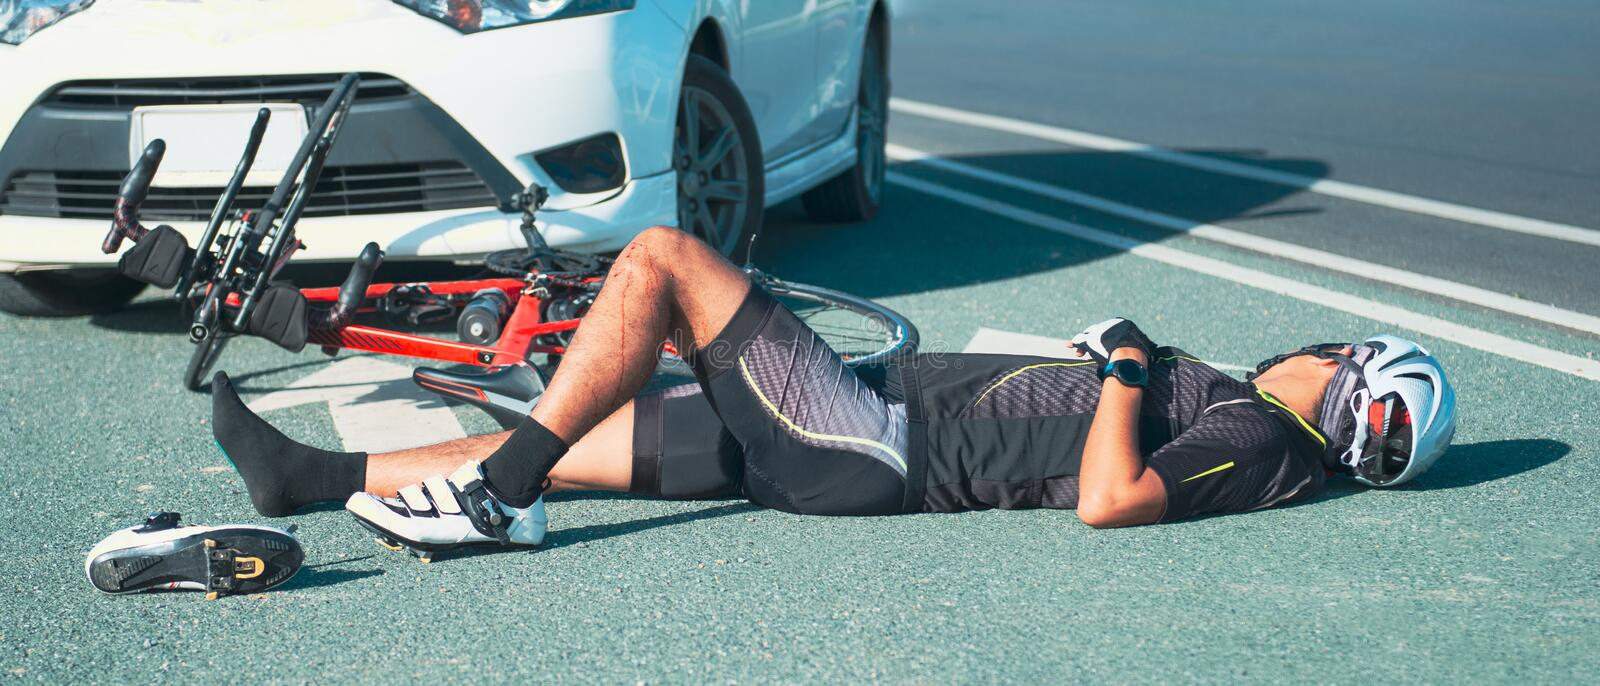 Unconscious male cyclist lying on road after road accident stock photography